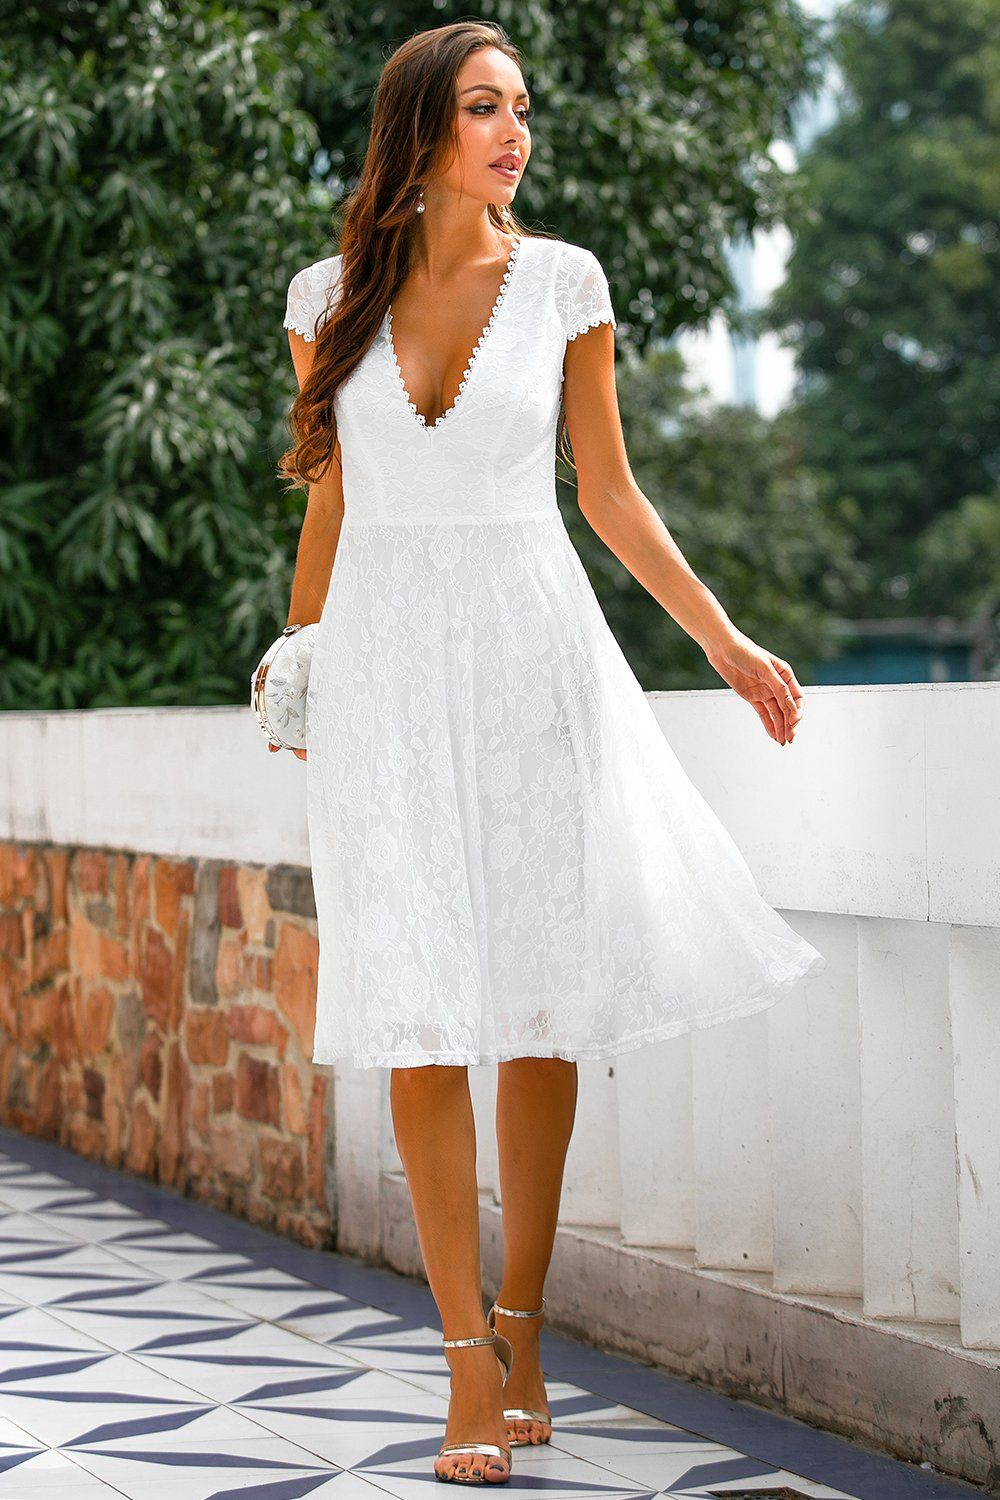 White Lace Open Back Party Dress Mod And Retro Clothing In 2021 Cocktail Dress Lace Lace Dress White Lace Dress Long [ 1500 x 1000 Pixel ]